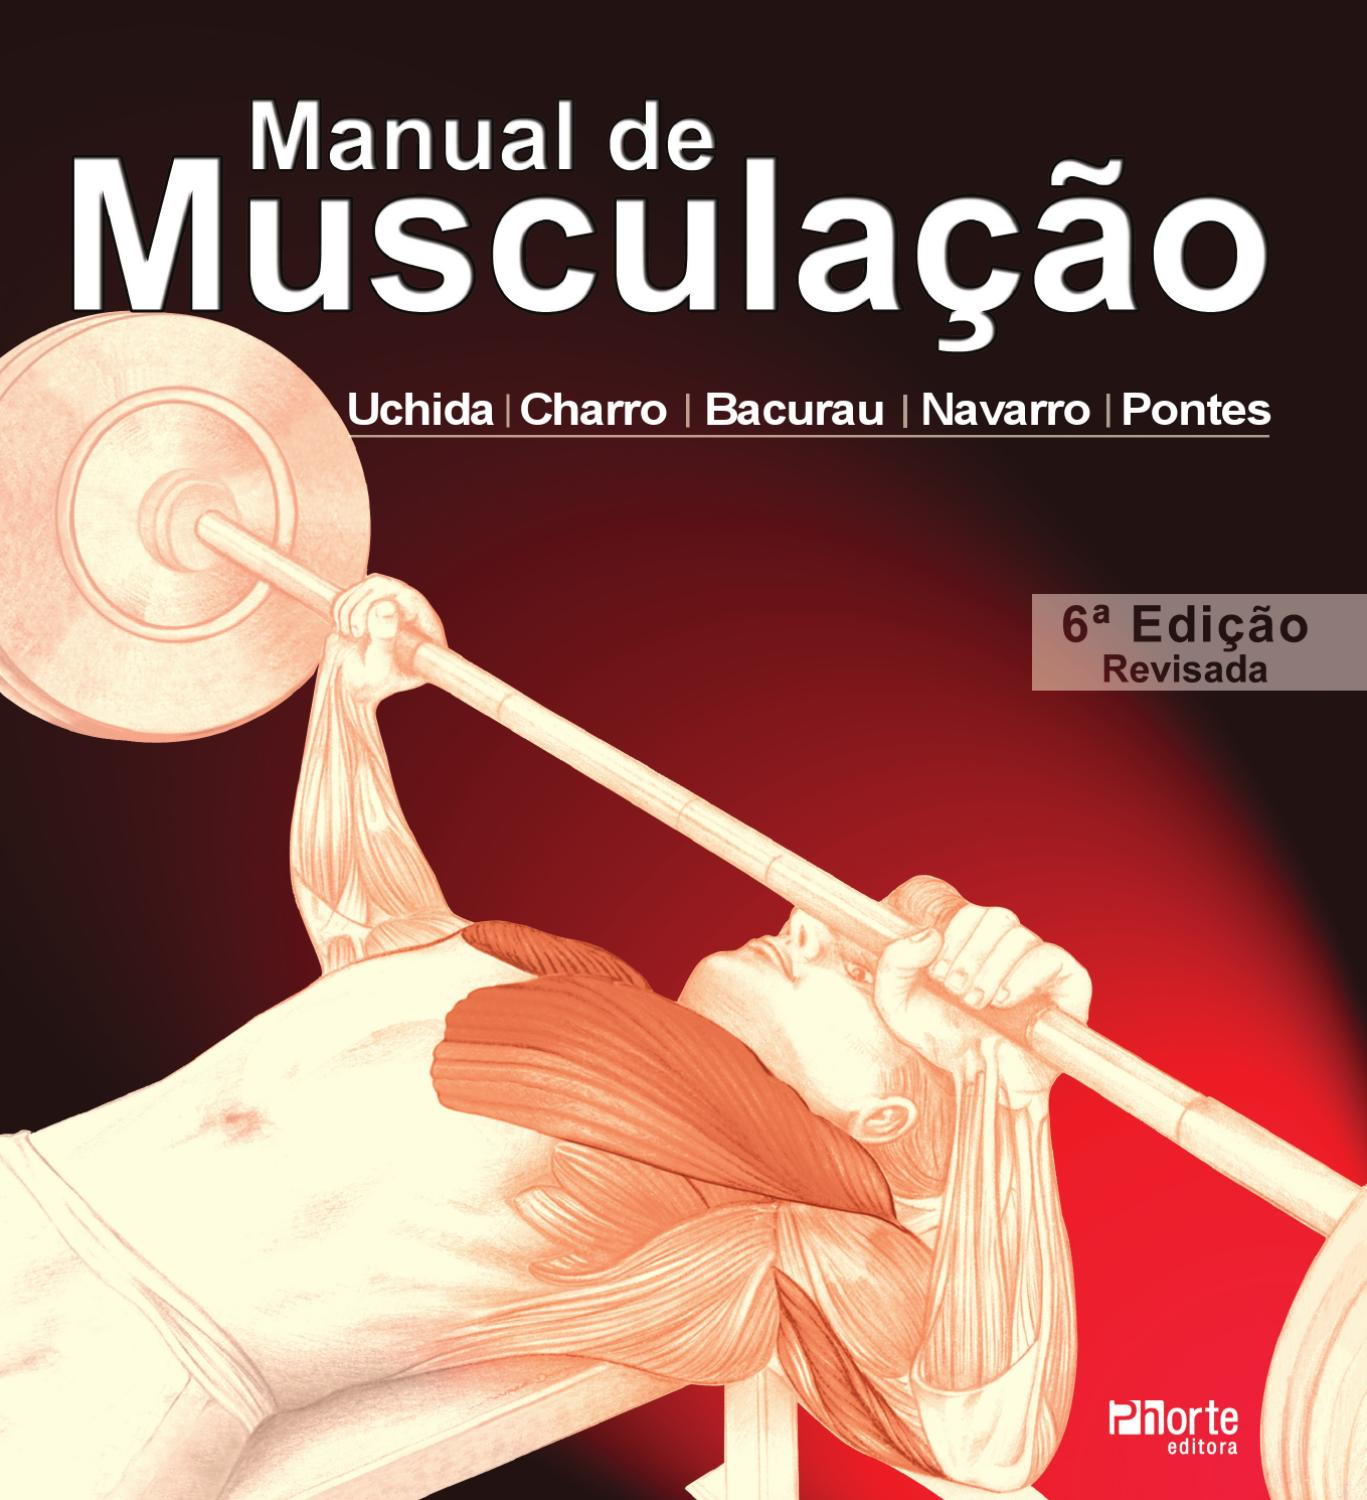 Manual de muscula o 6ed by phorte editora issuu for Manual de acuicultura pdf